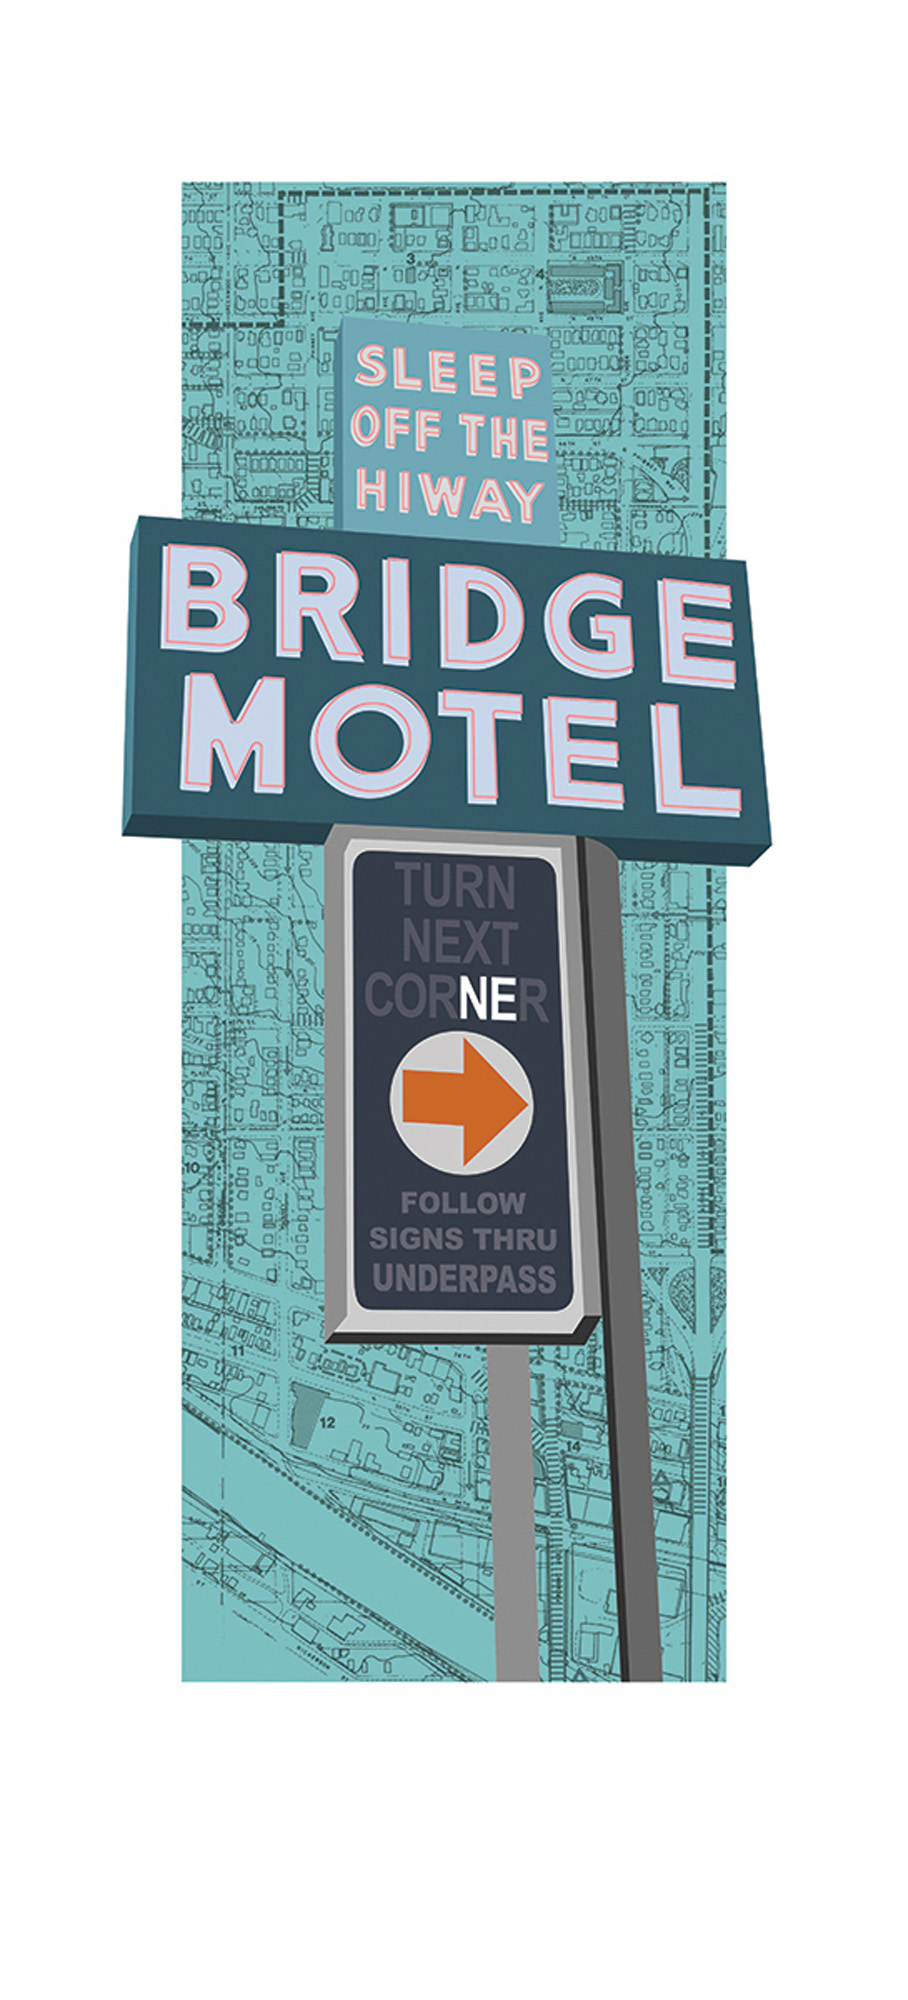 "Amy Douglas ""Bridge Motel"" Hand-pulled serigraph on Stonehenge Warm White 15.25 x 27.5 inches 1/13 ADO 011G"